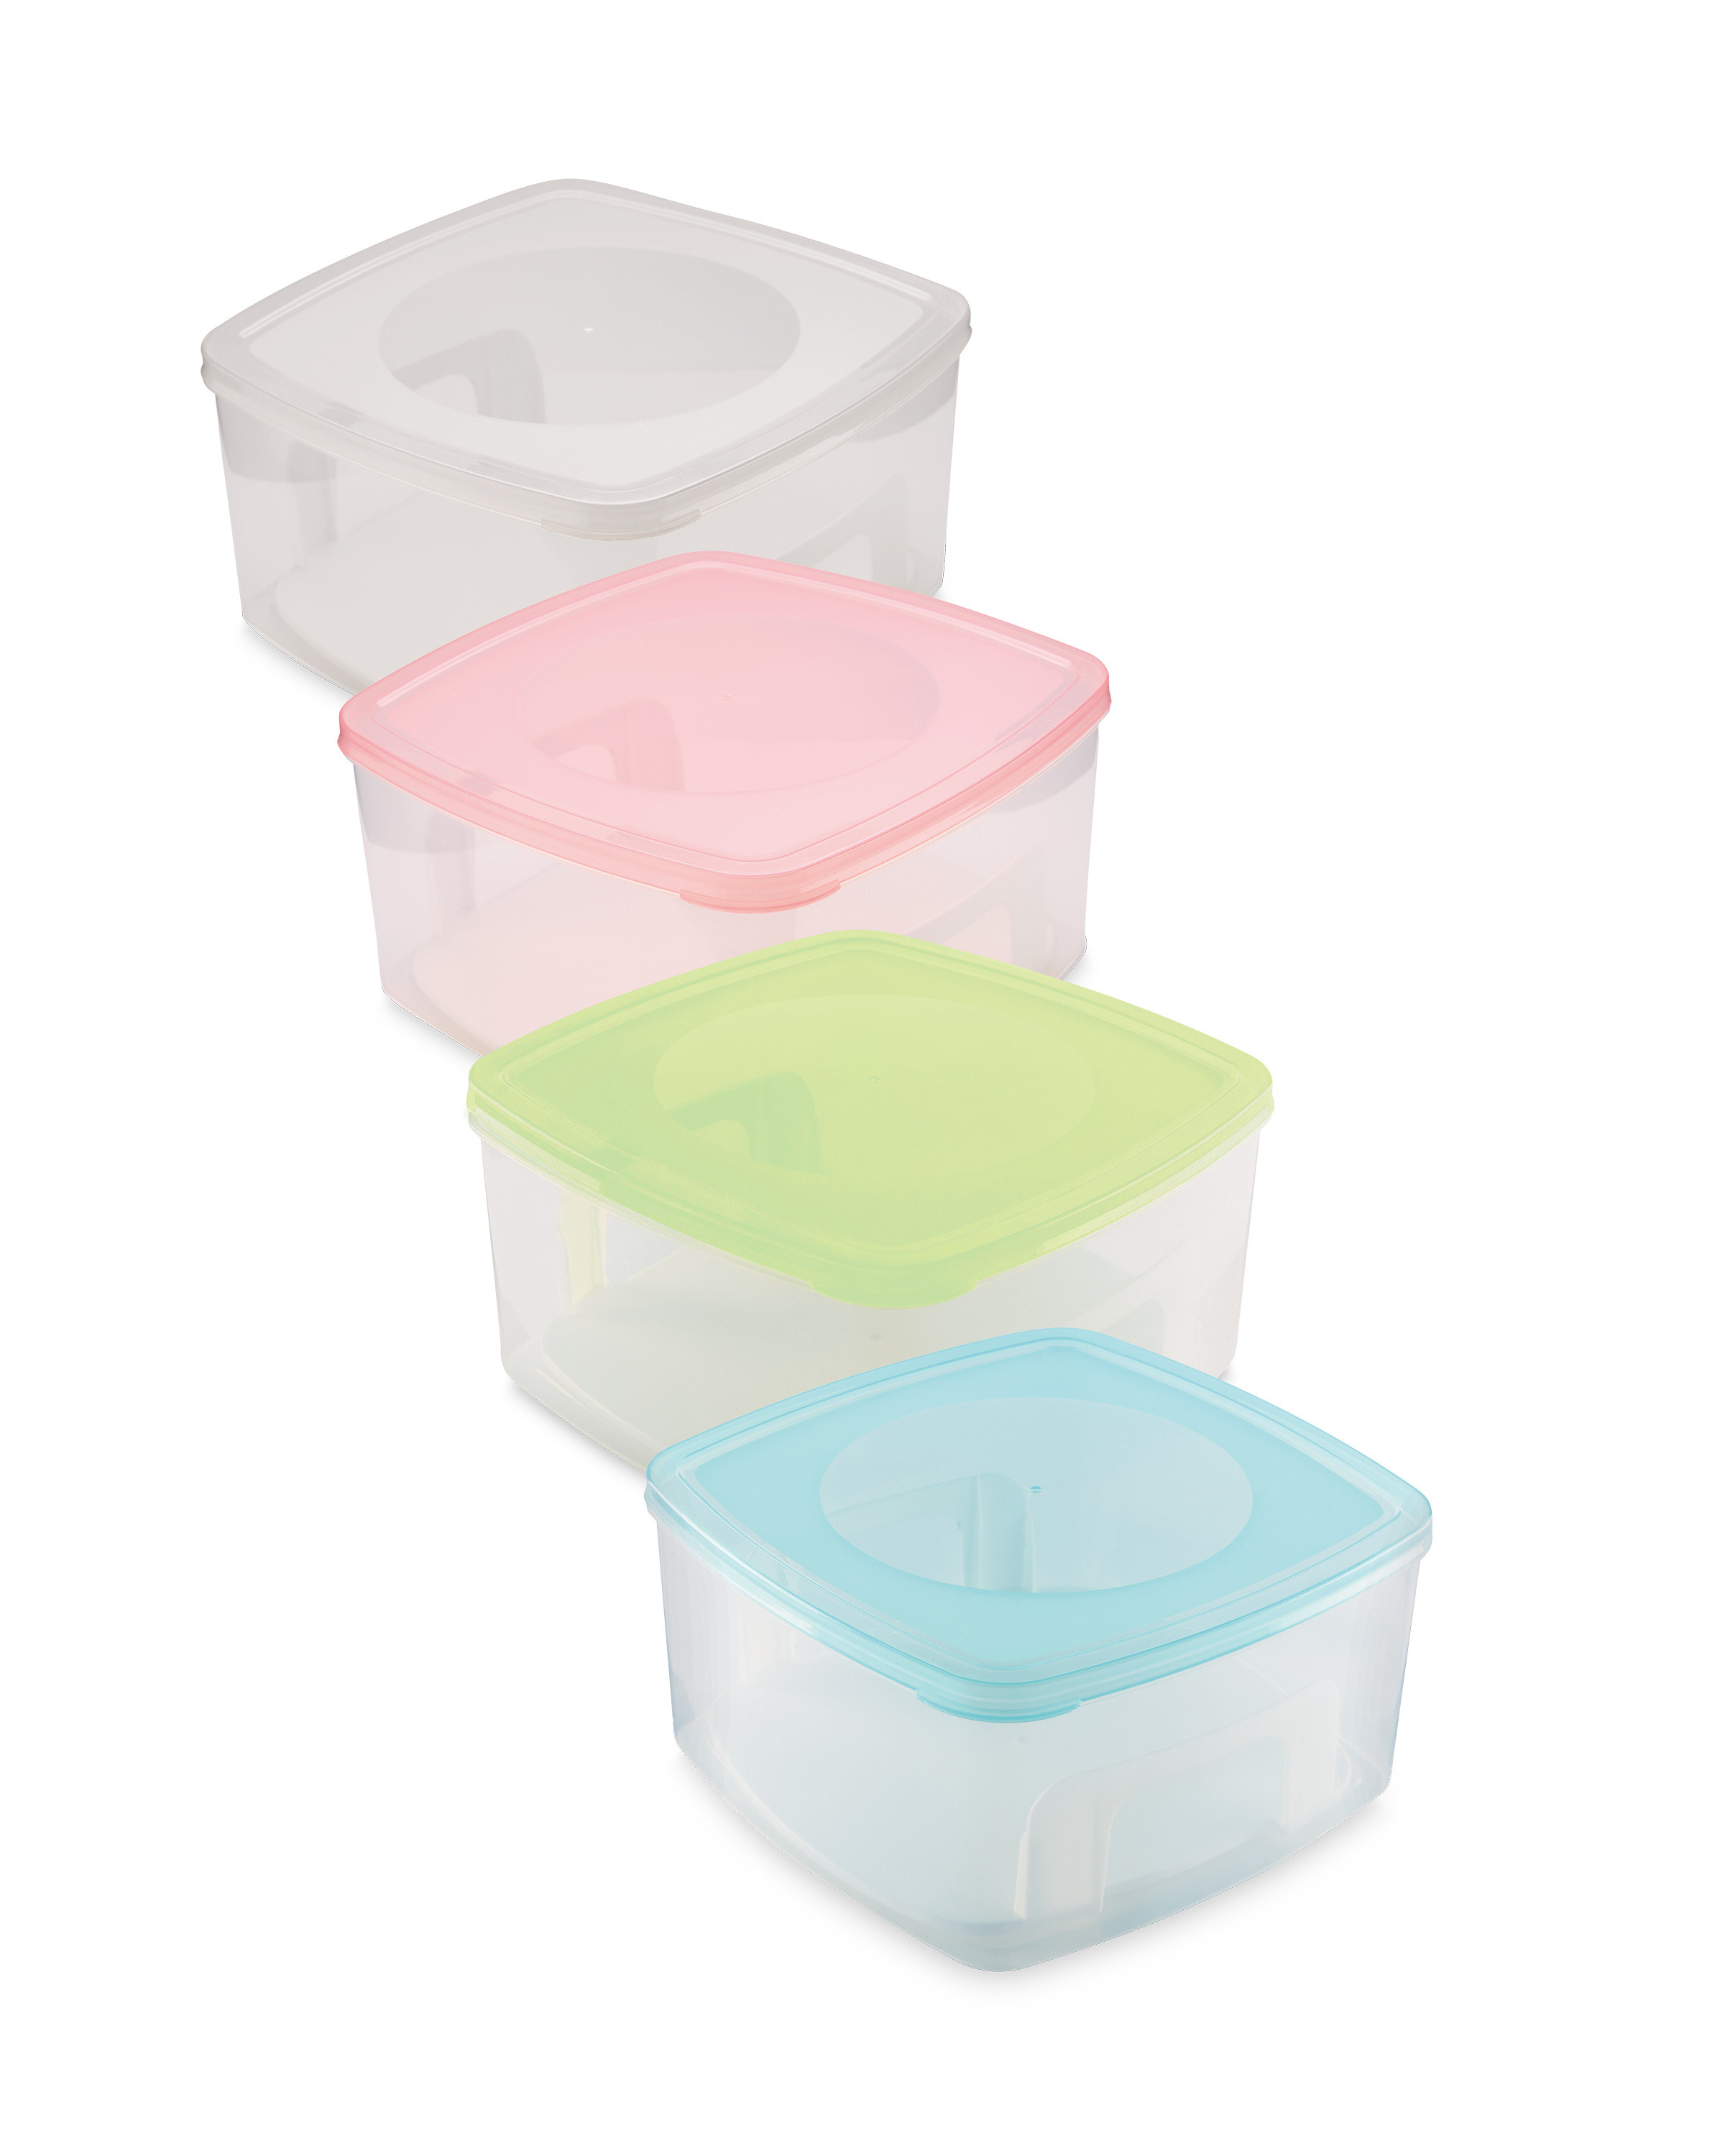 Cake Box with Lifter